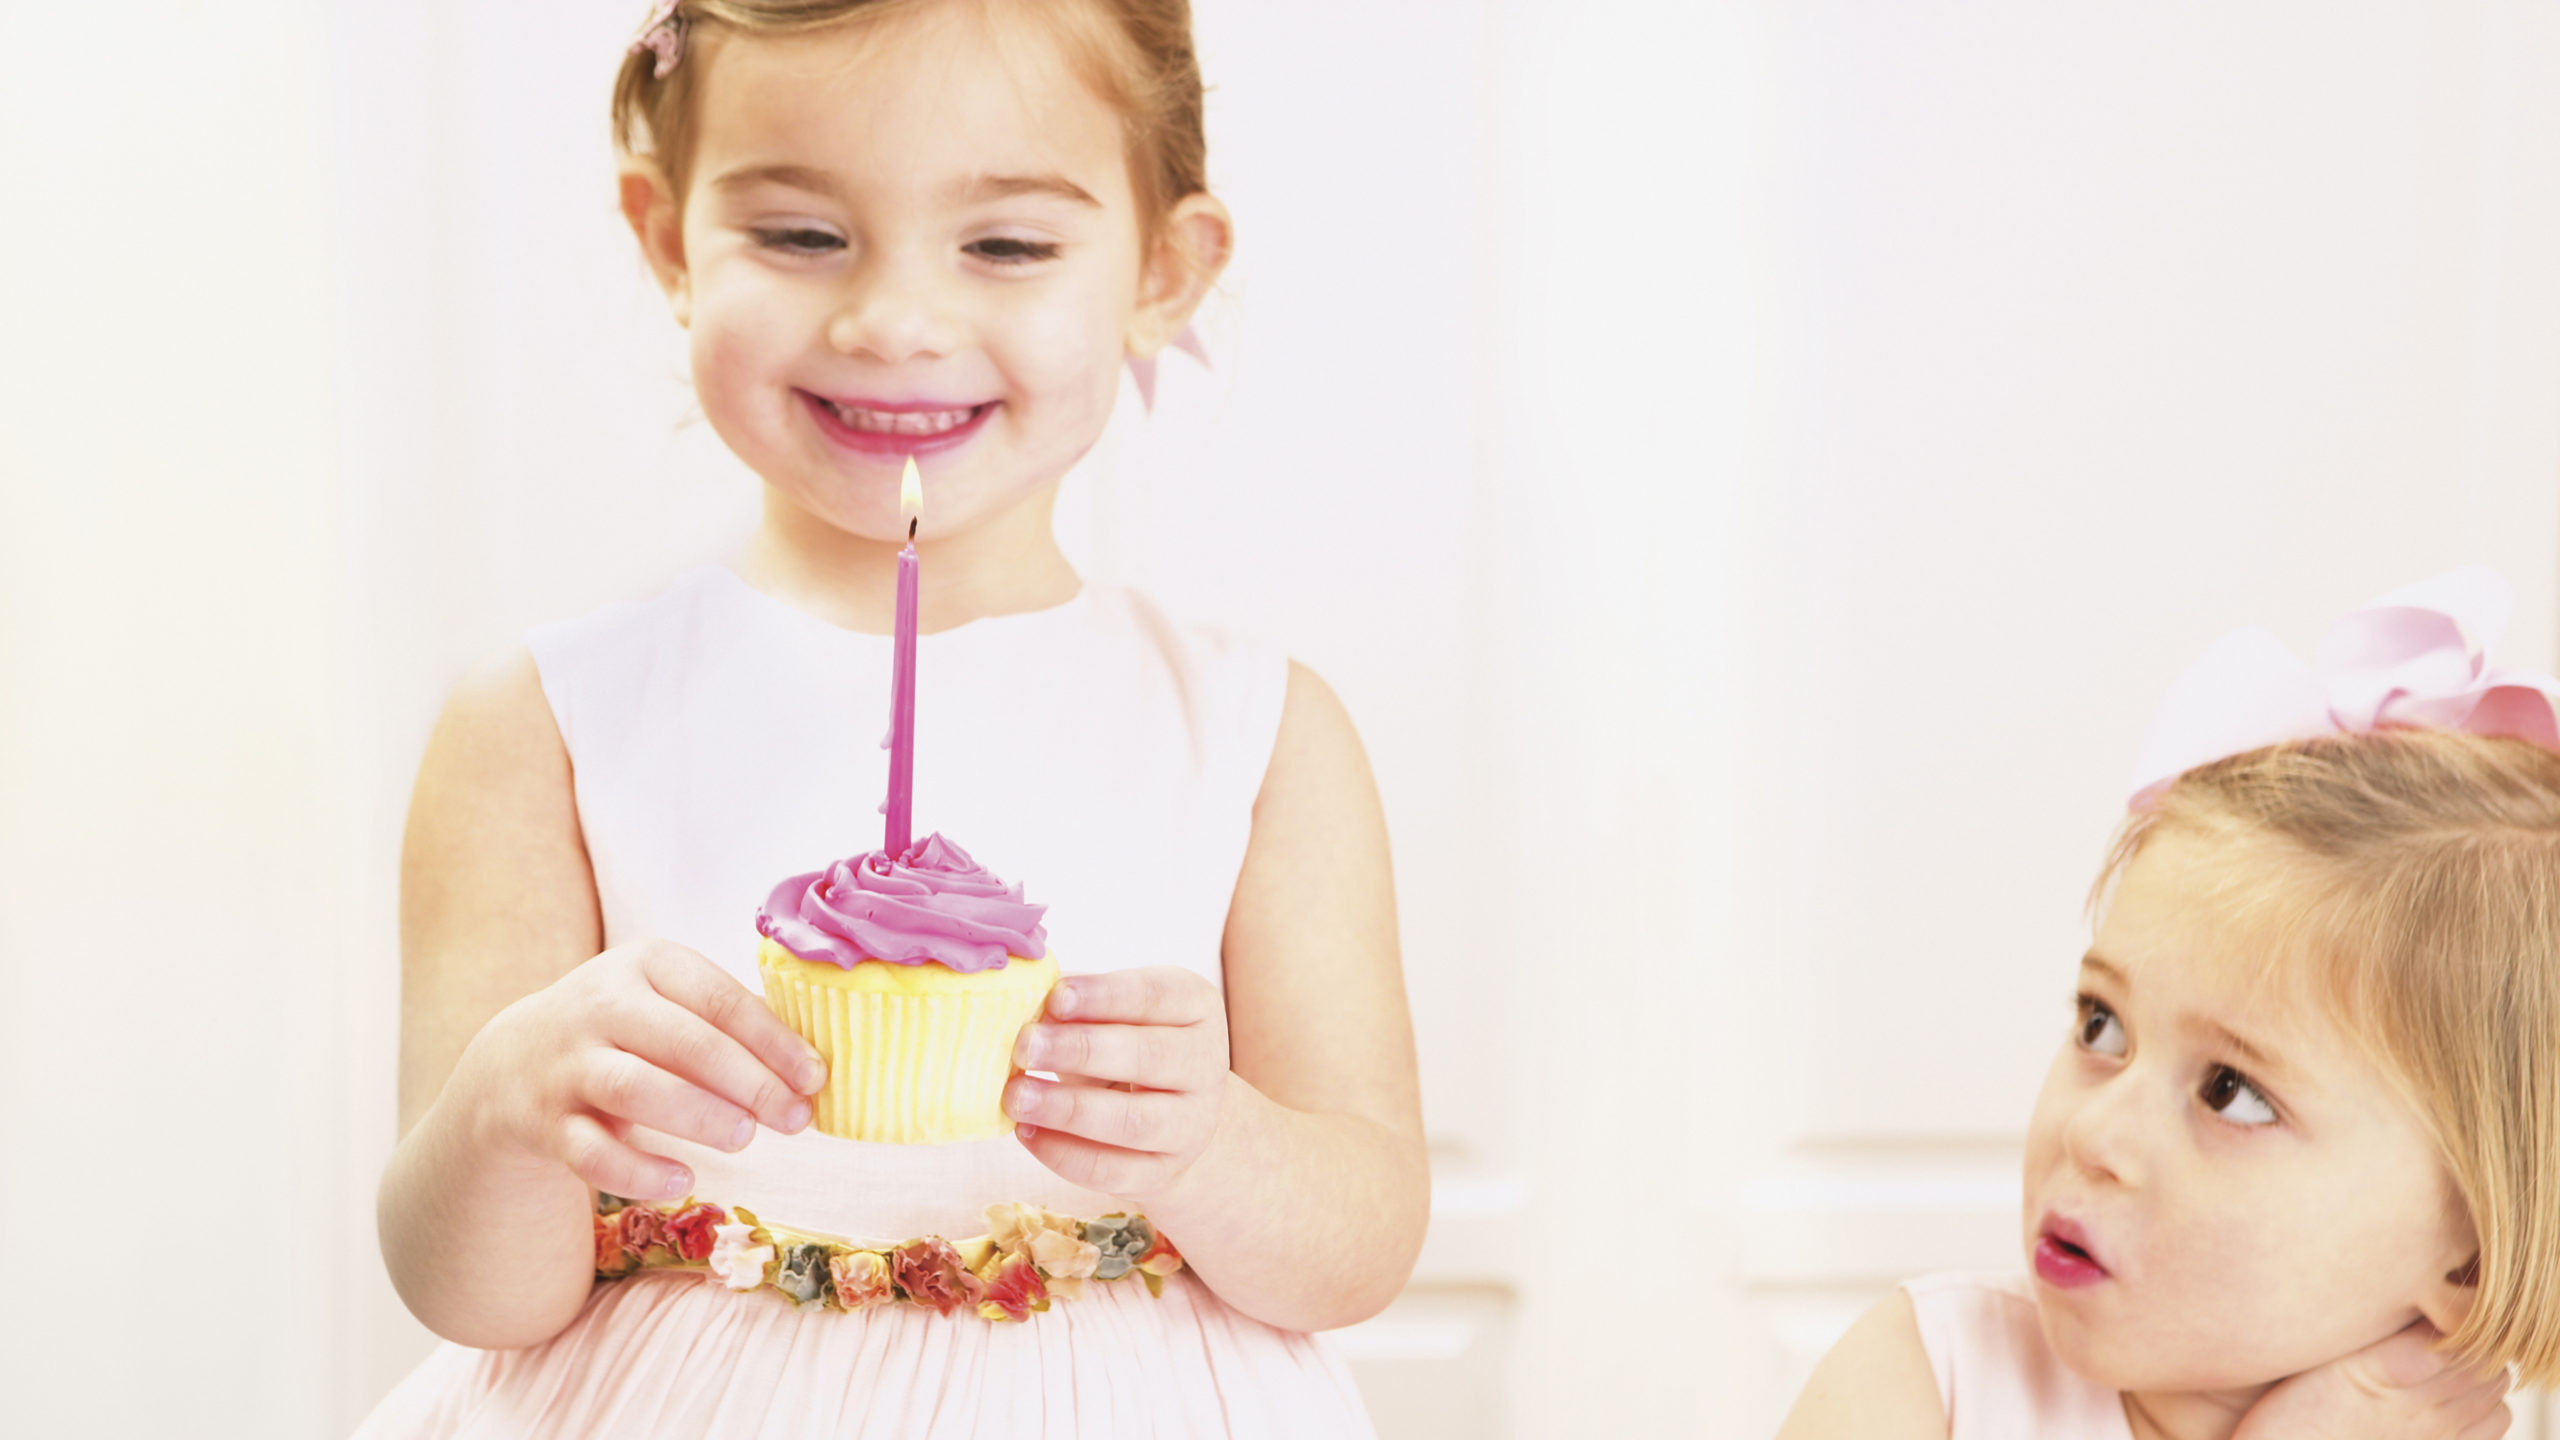 Ask The Dad: The Over-The-Top Birthday Party